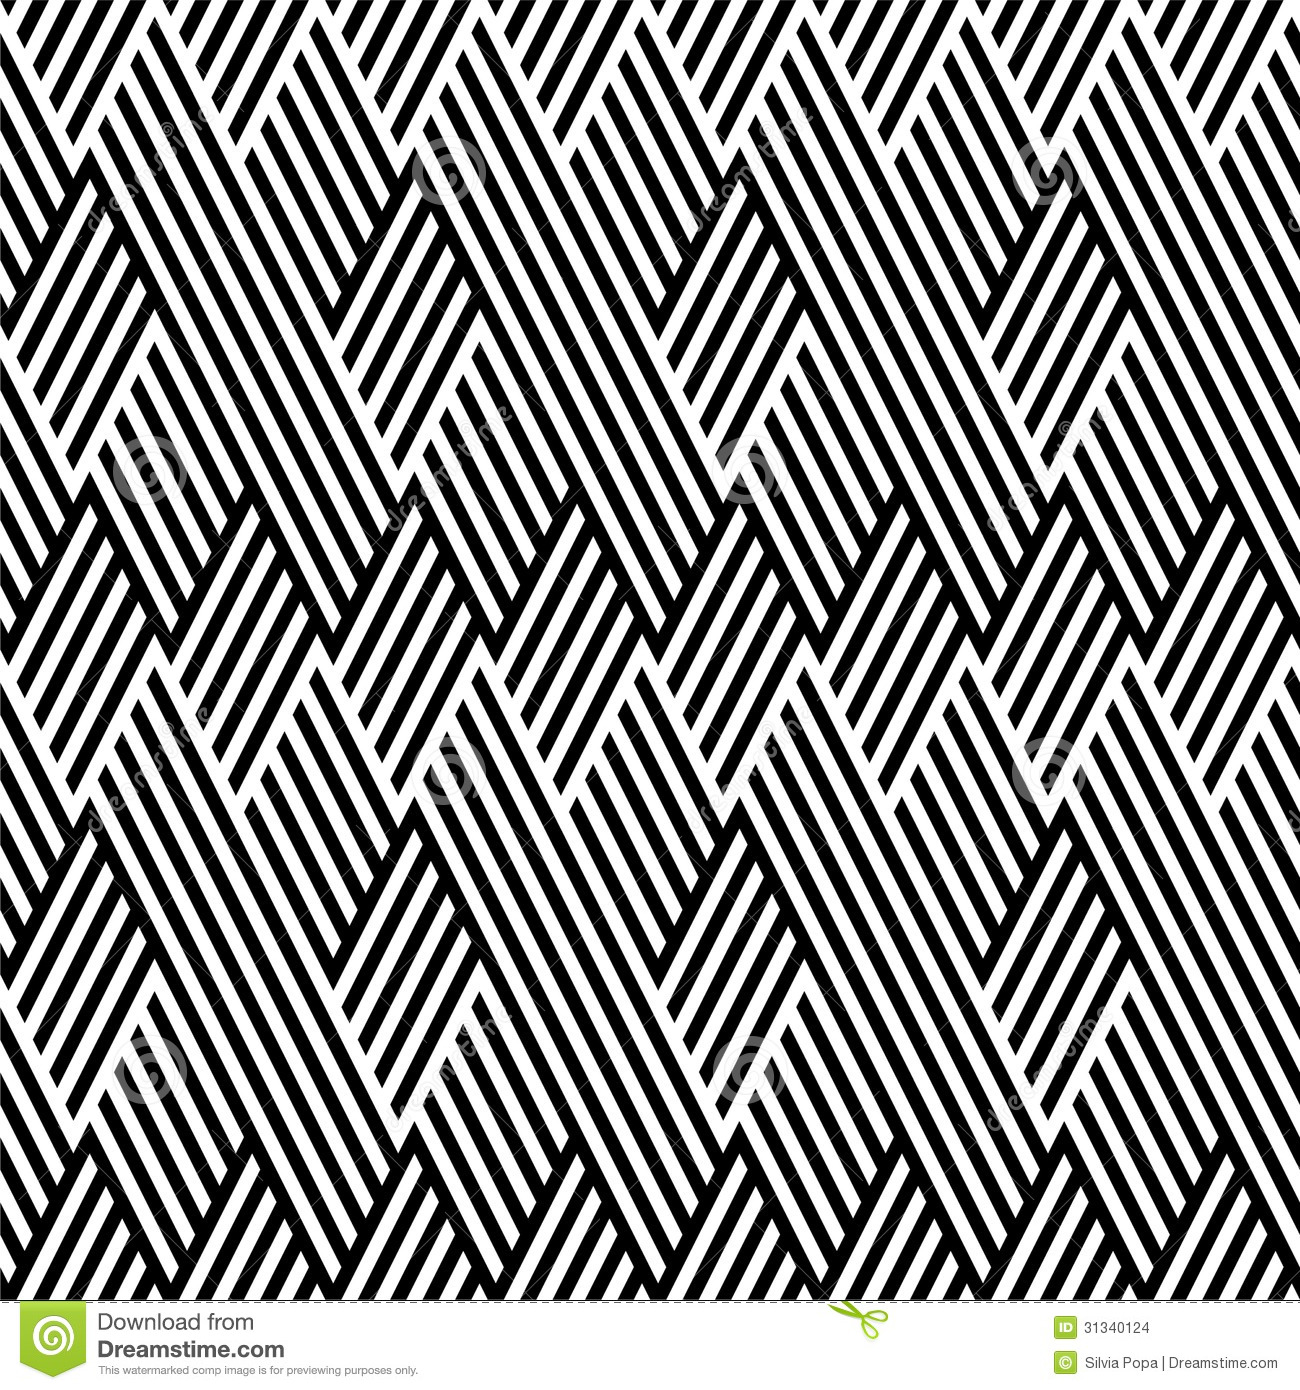 Black And White Line Designs : Pattern with line black and white stock illustration